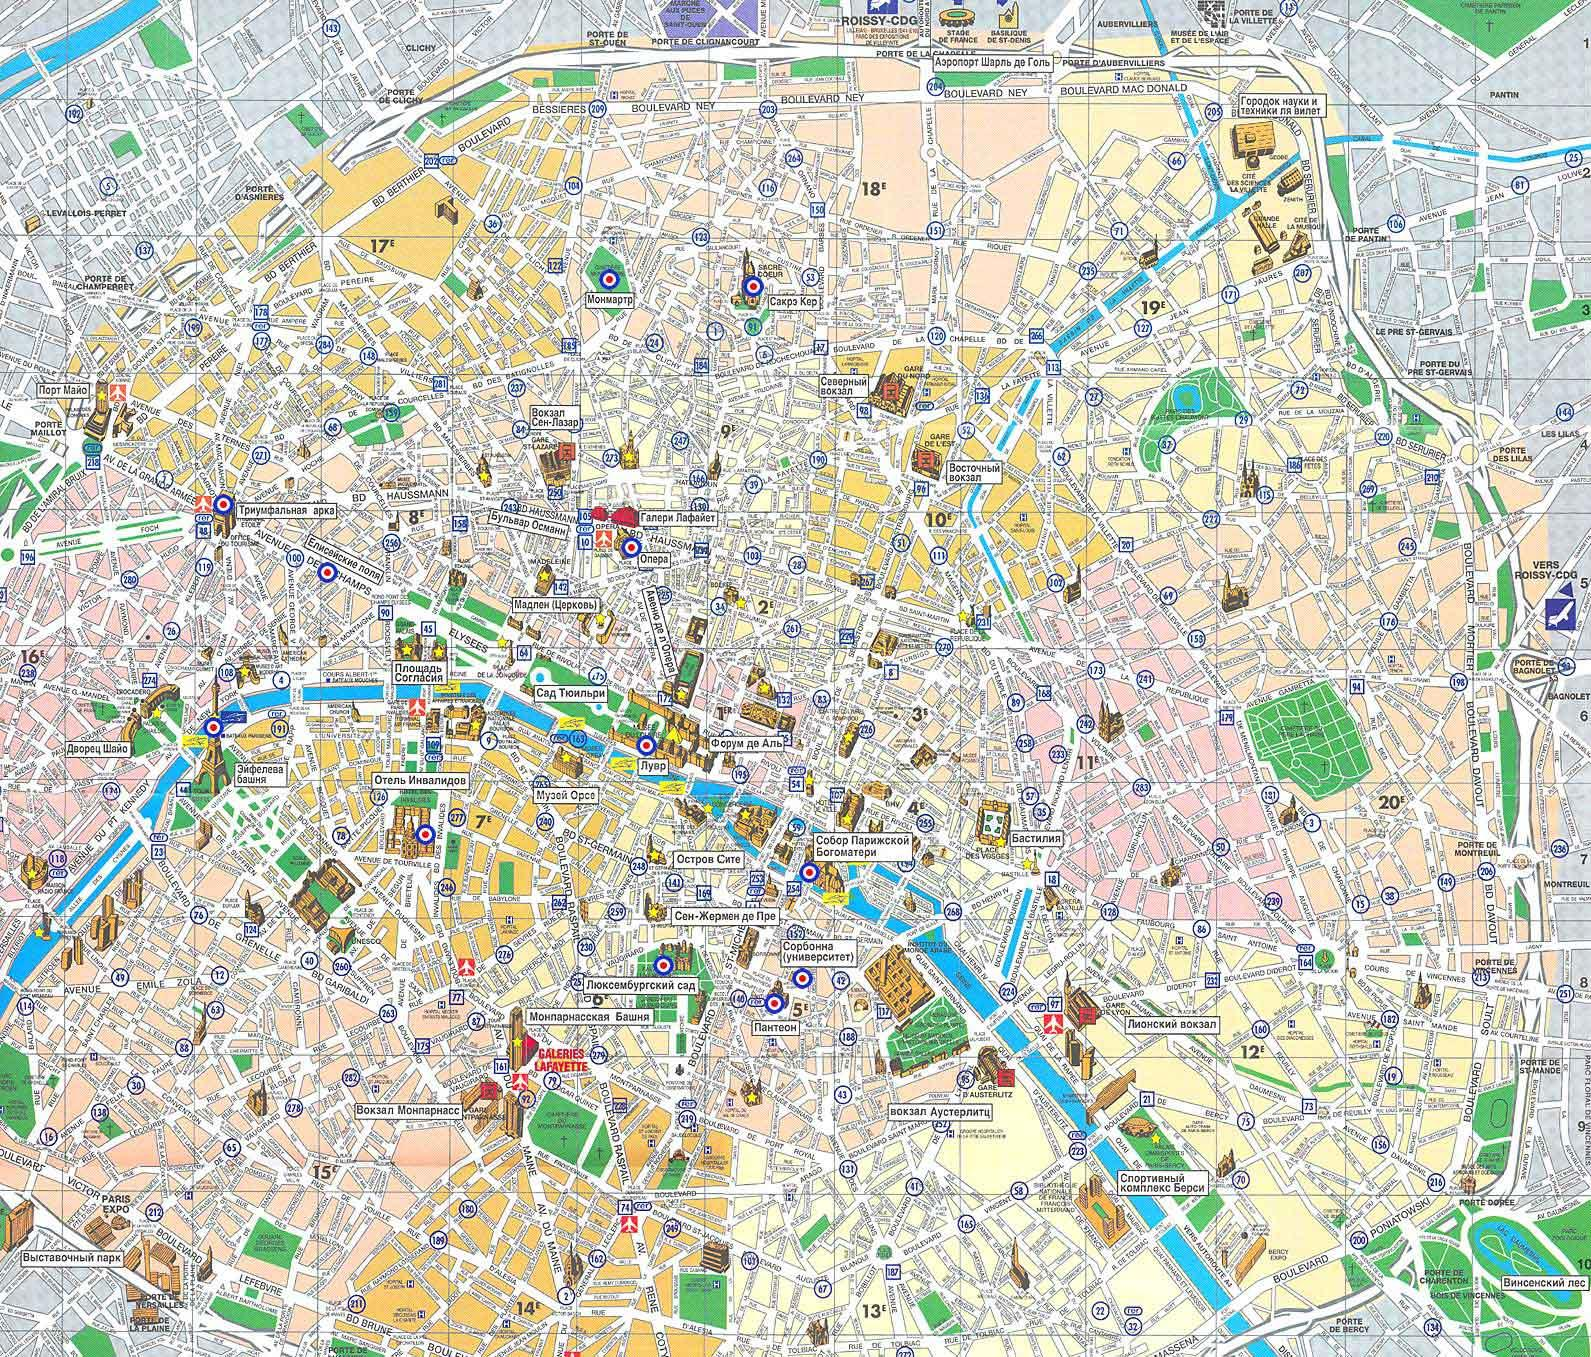 Tourist map of Paris France - Paris tourist spots map (Île ...